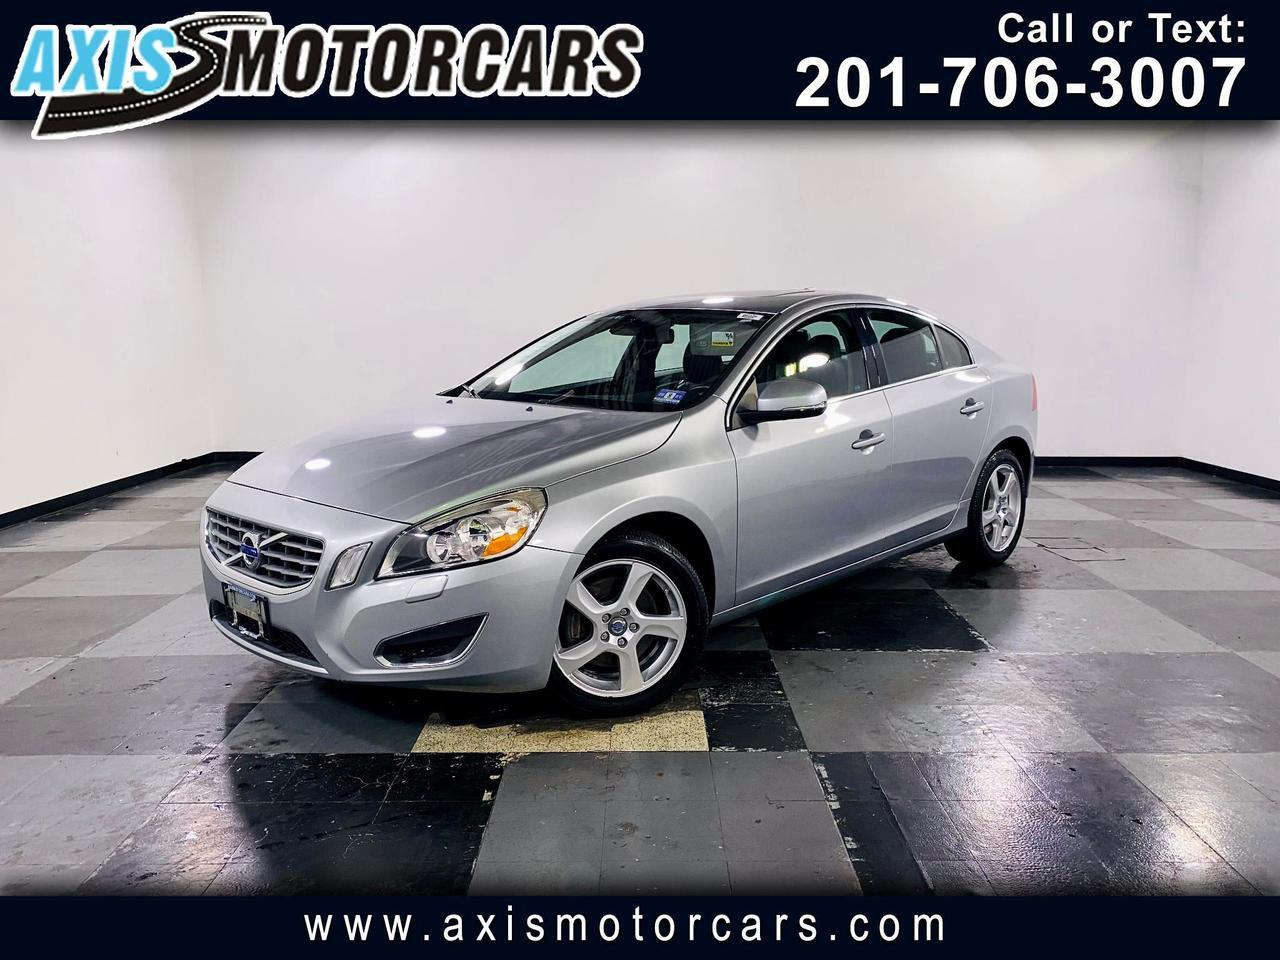 2012 Volvo S60 T5 4dr w/Sunroof Jersey City NJ